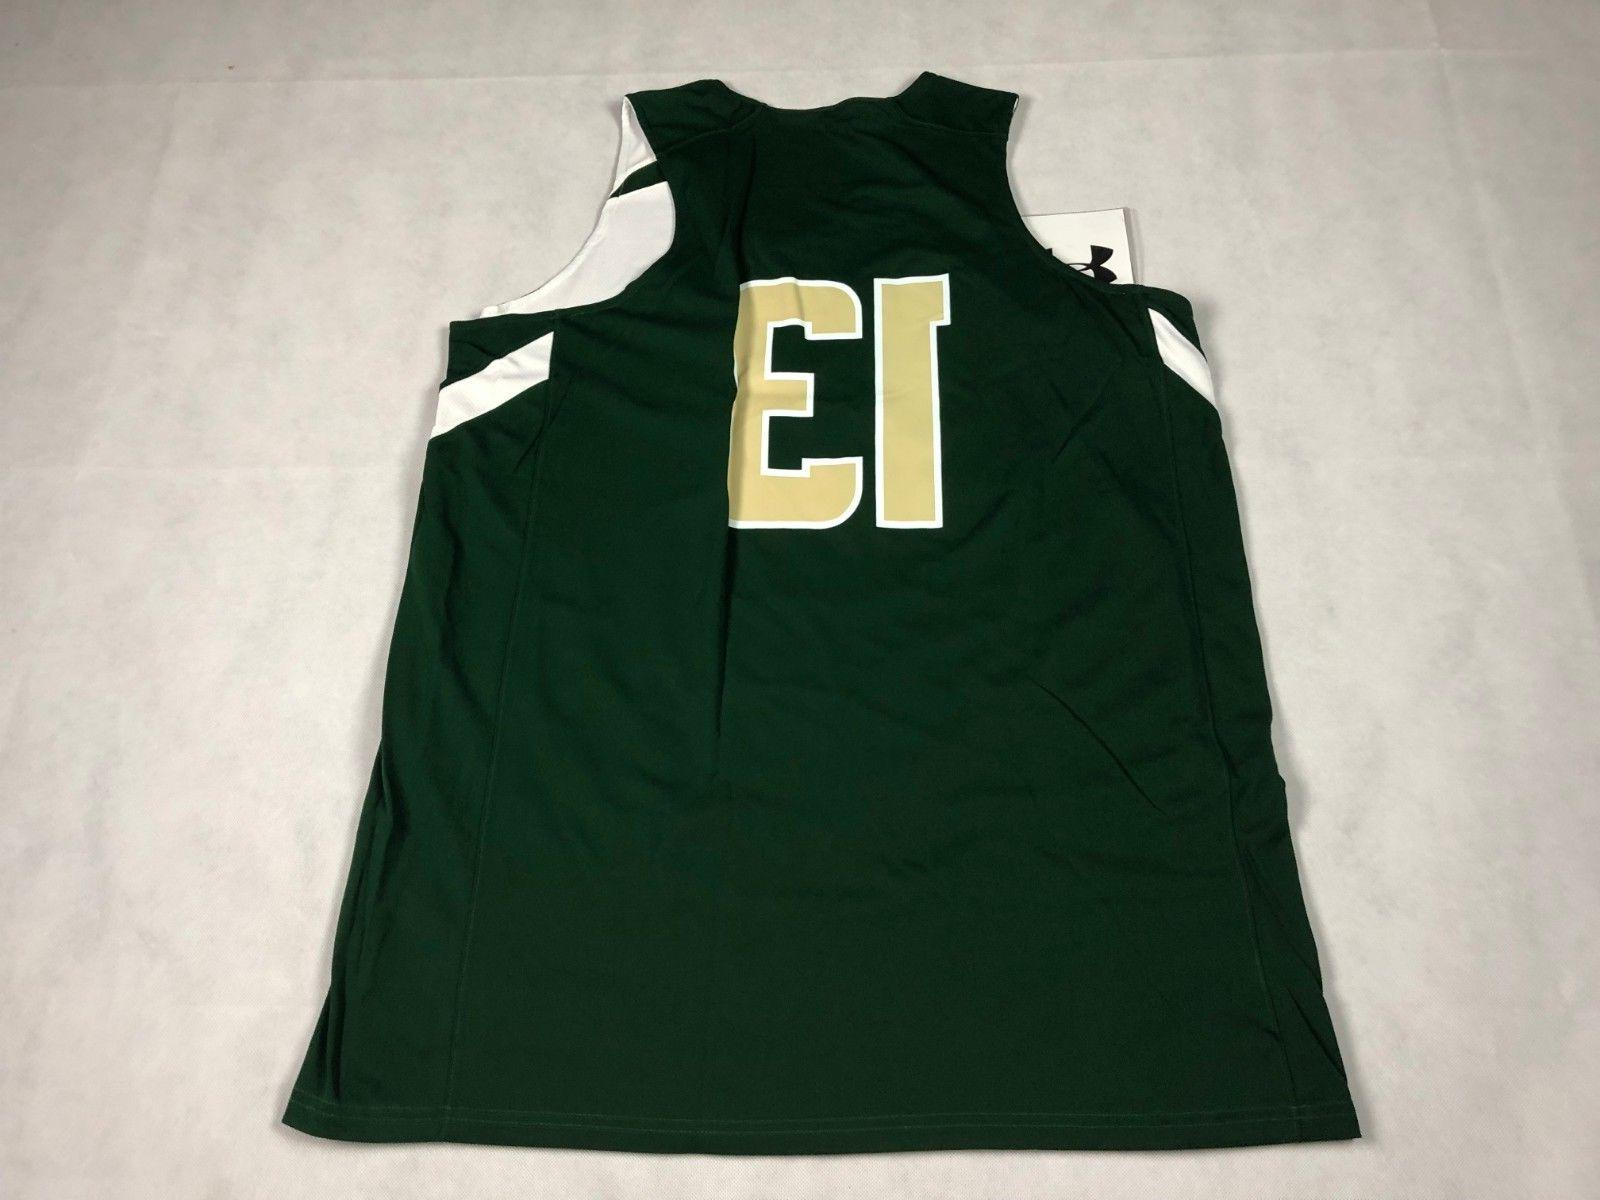 UNDER ARMOUR BASKETBALL REVERSIBLE JERSEY STATE